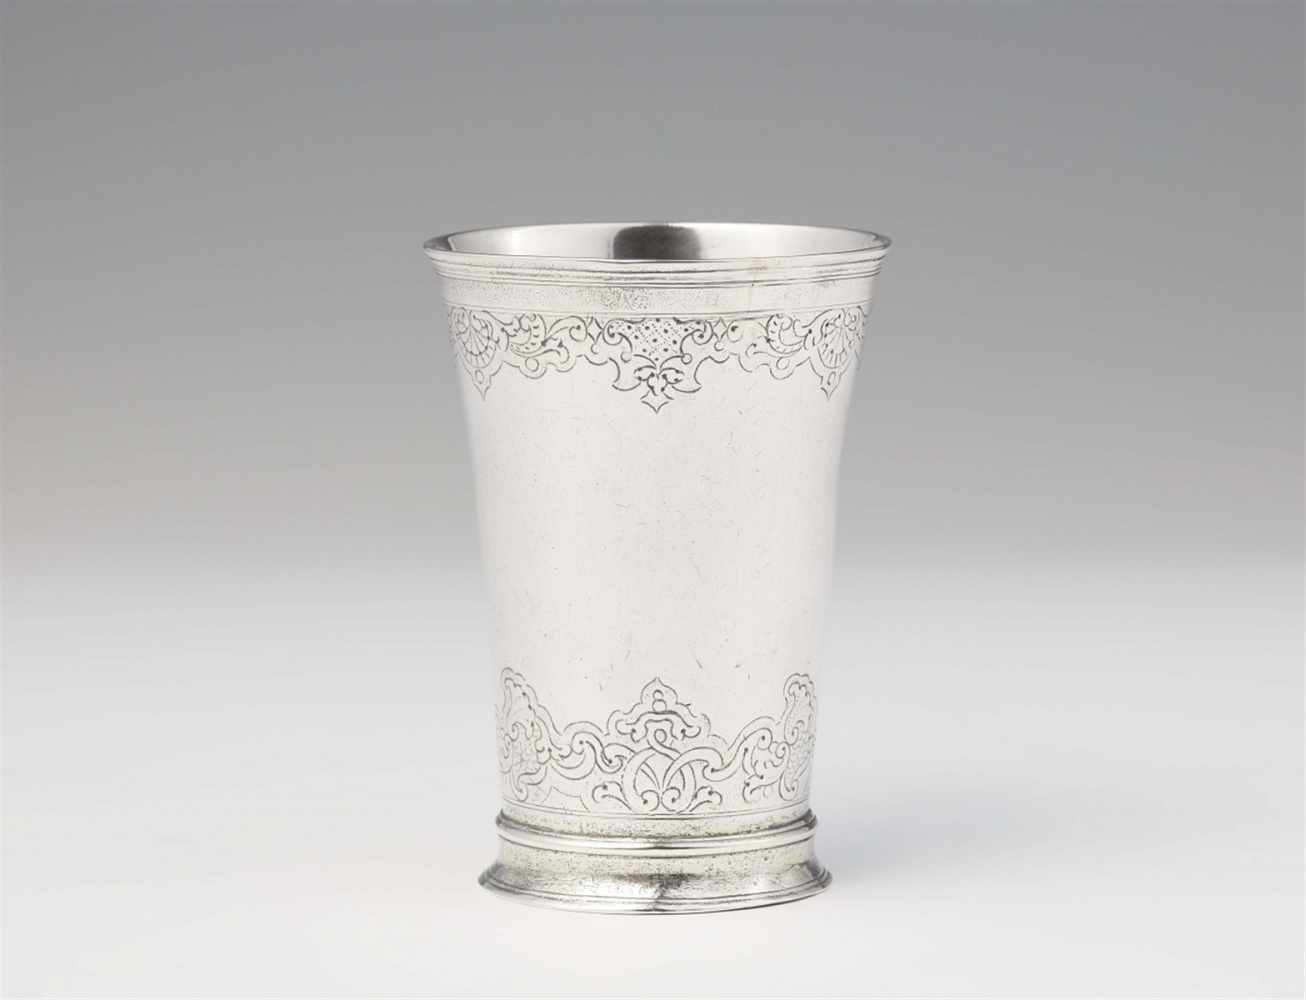 Lot 327 - An Augsburg Régence silver beakerTapering beaker with remnants of gilding on a waisted base. H 9.2